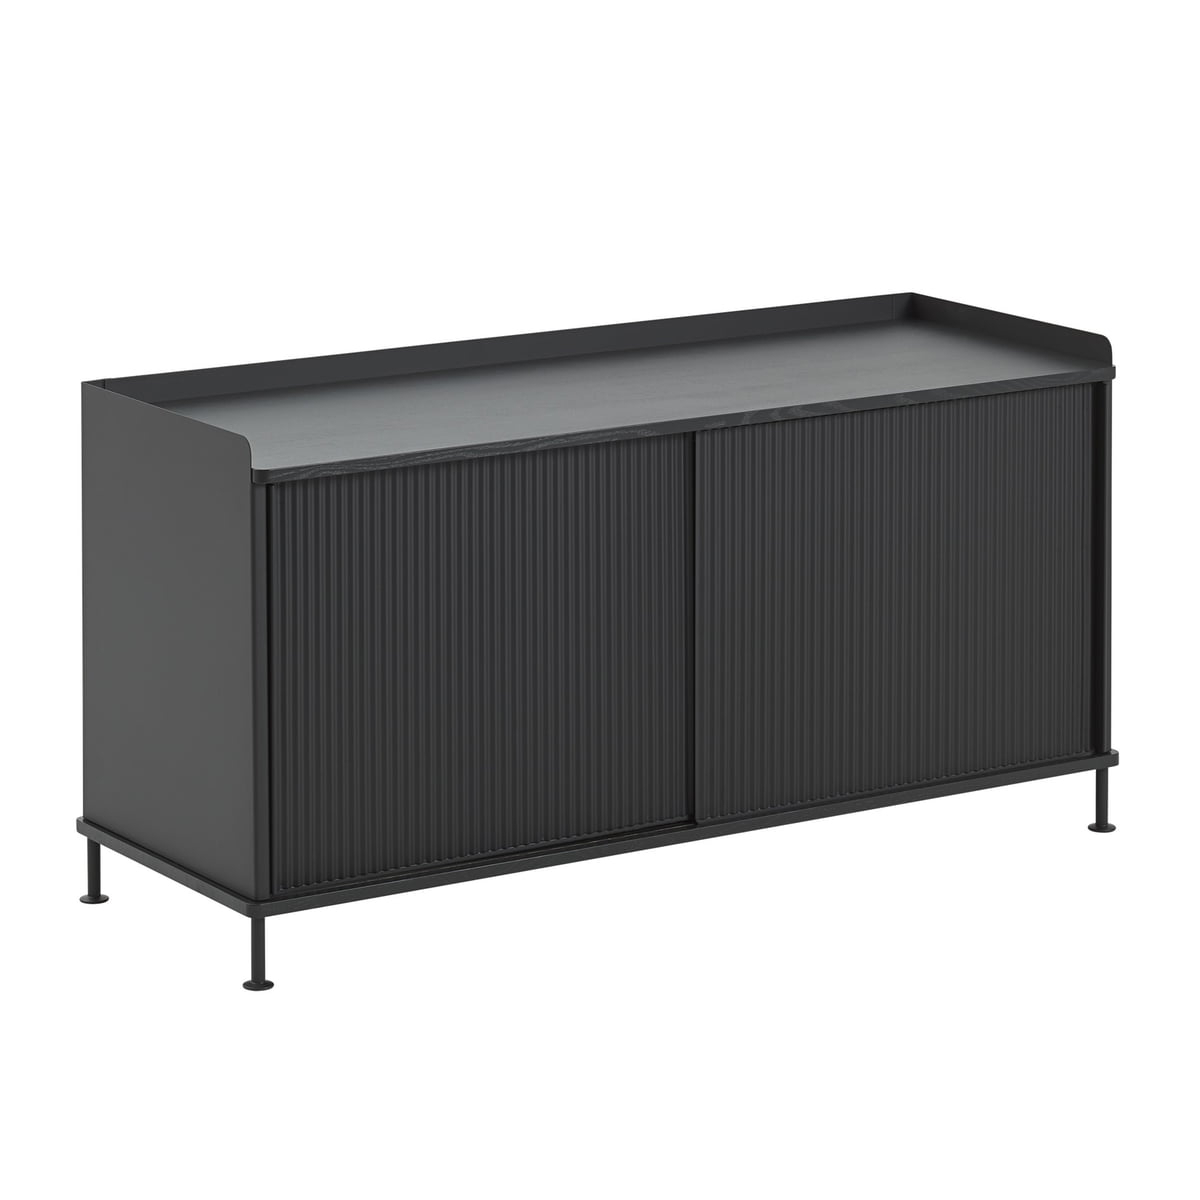 Inspiration about Muuto Enfold Muuto Sideboard Niedrigschwarz Sideboard Enfold Pertaining To Most Recently Released Alegre Sideboards (#17 of 20)